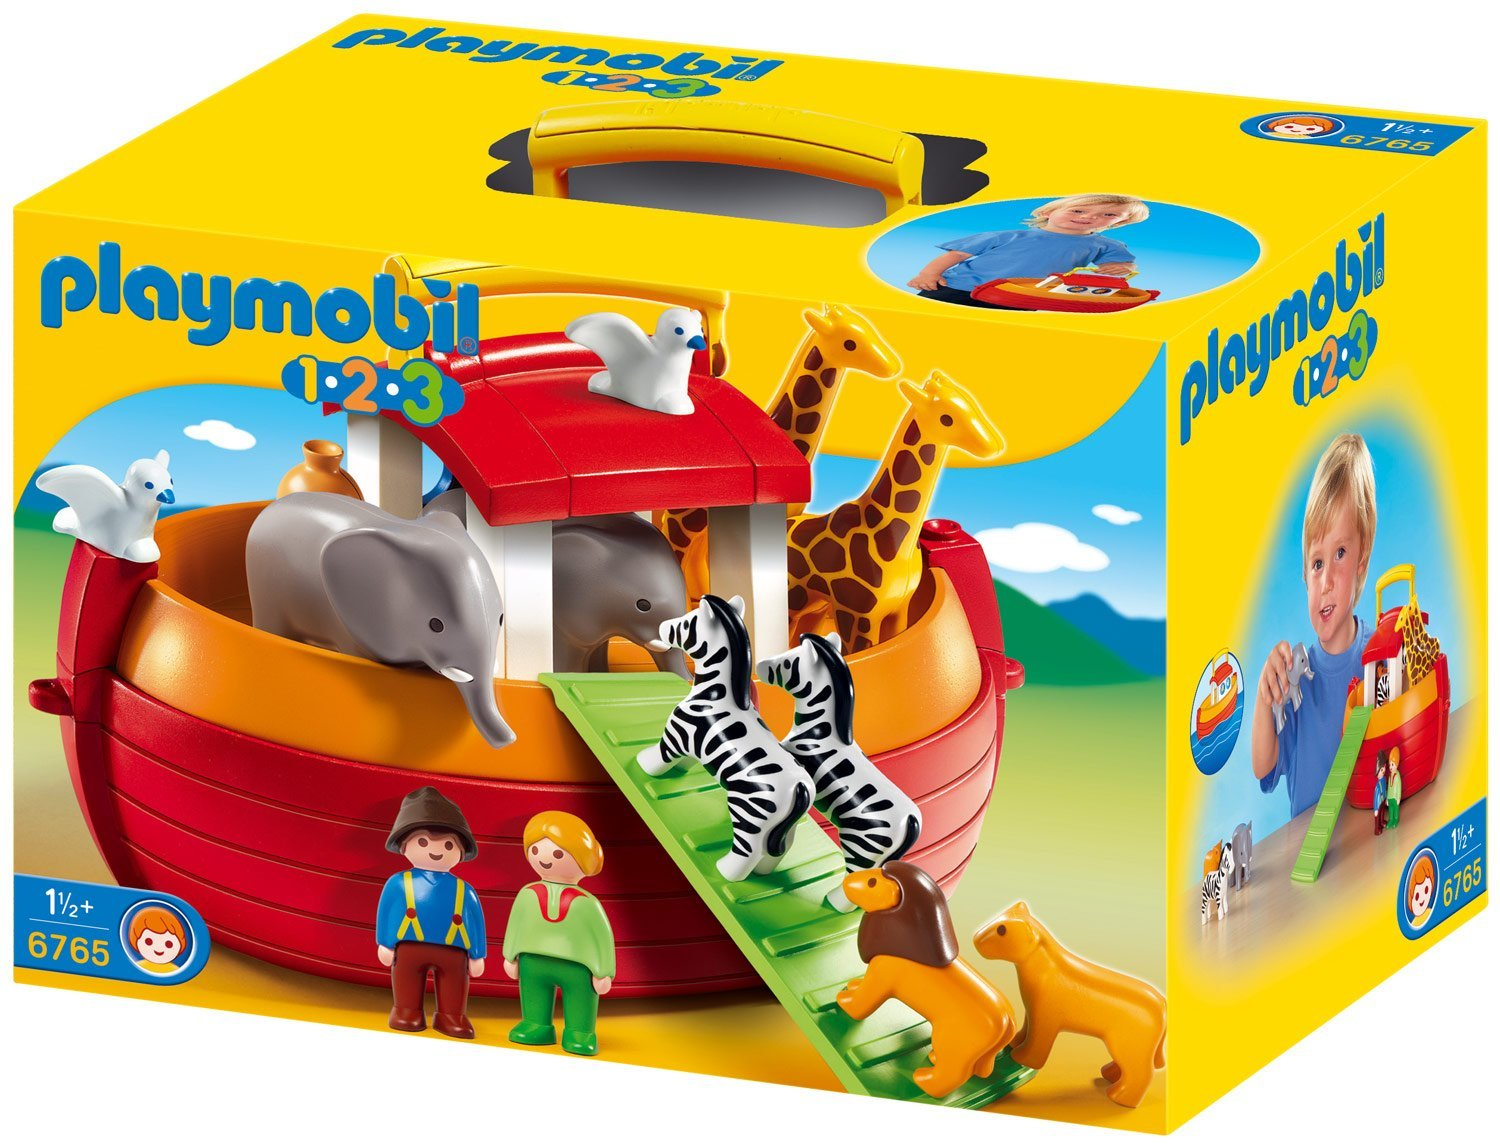 PLAYMOBIL 123 Take Along Noah's Ark 6765